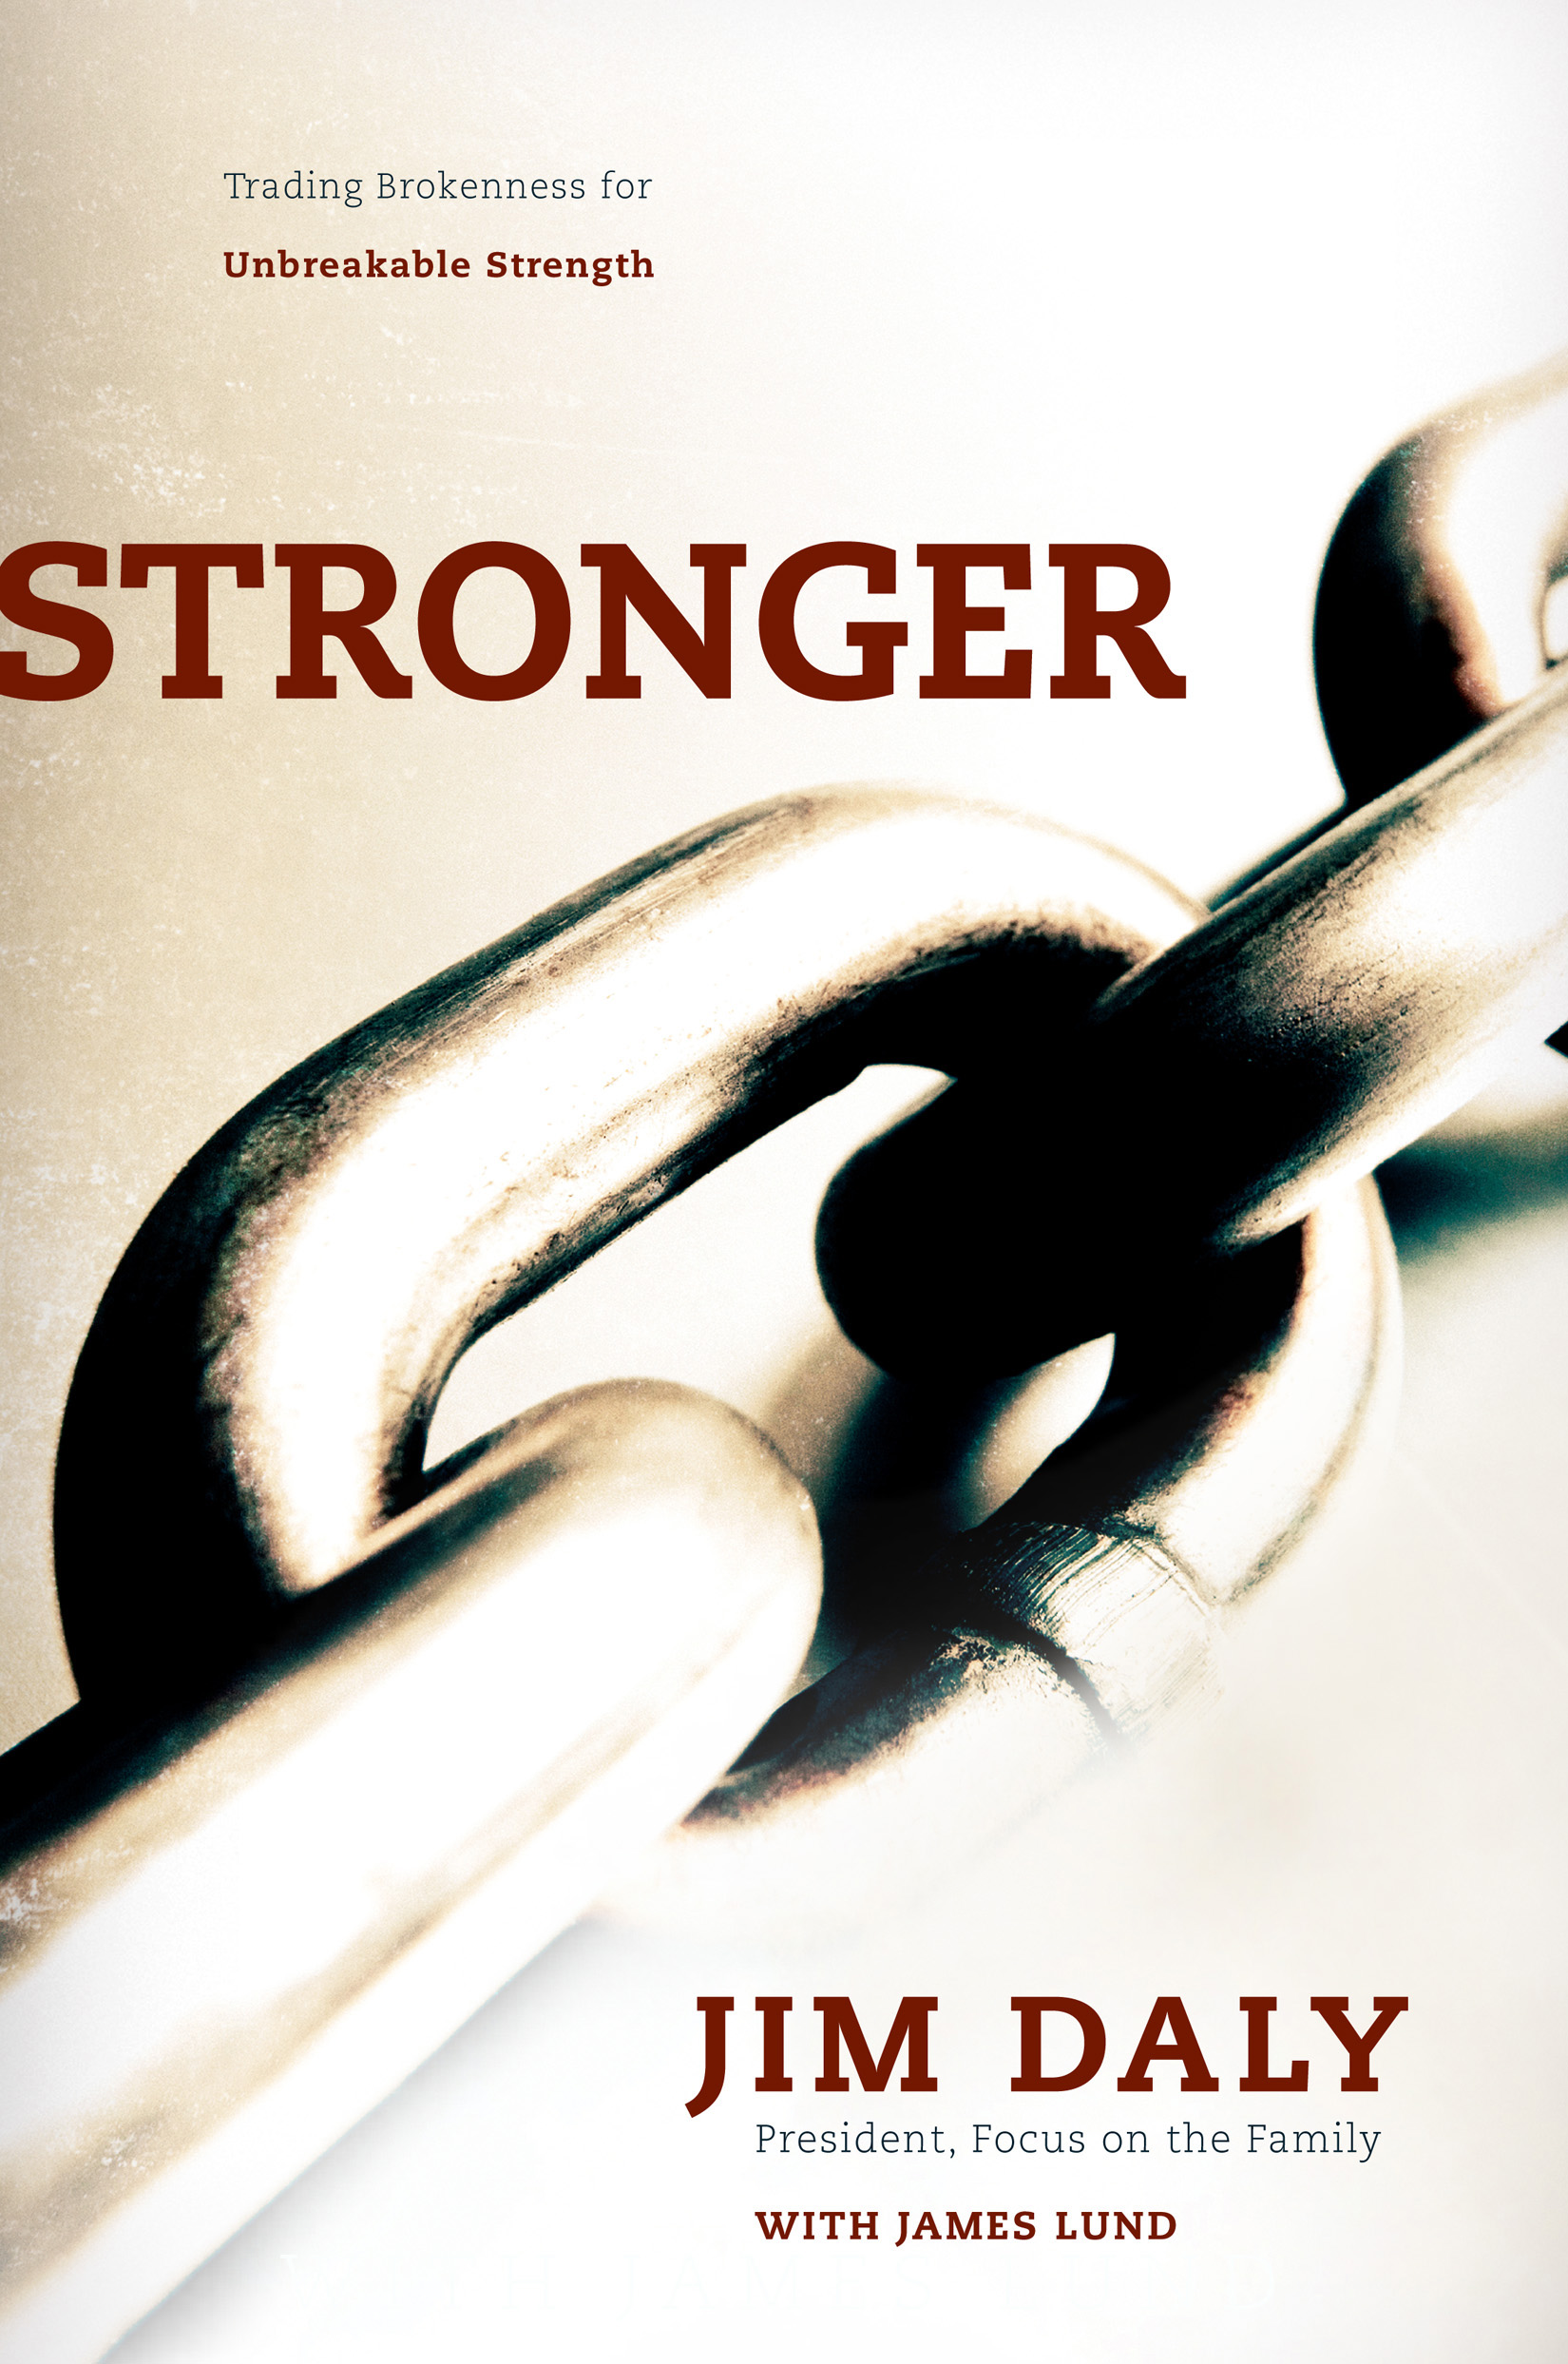 Stronger                                                                                            : Trading Brokenness for Unbreakable Strength